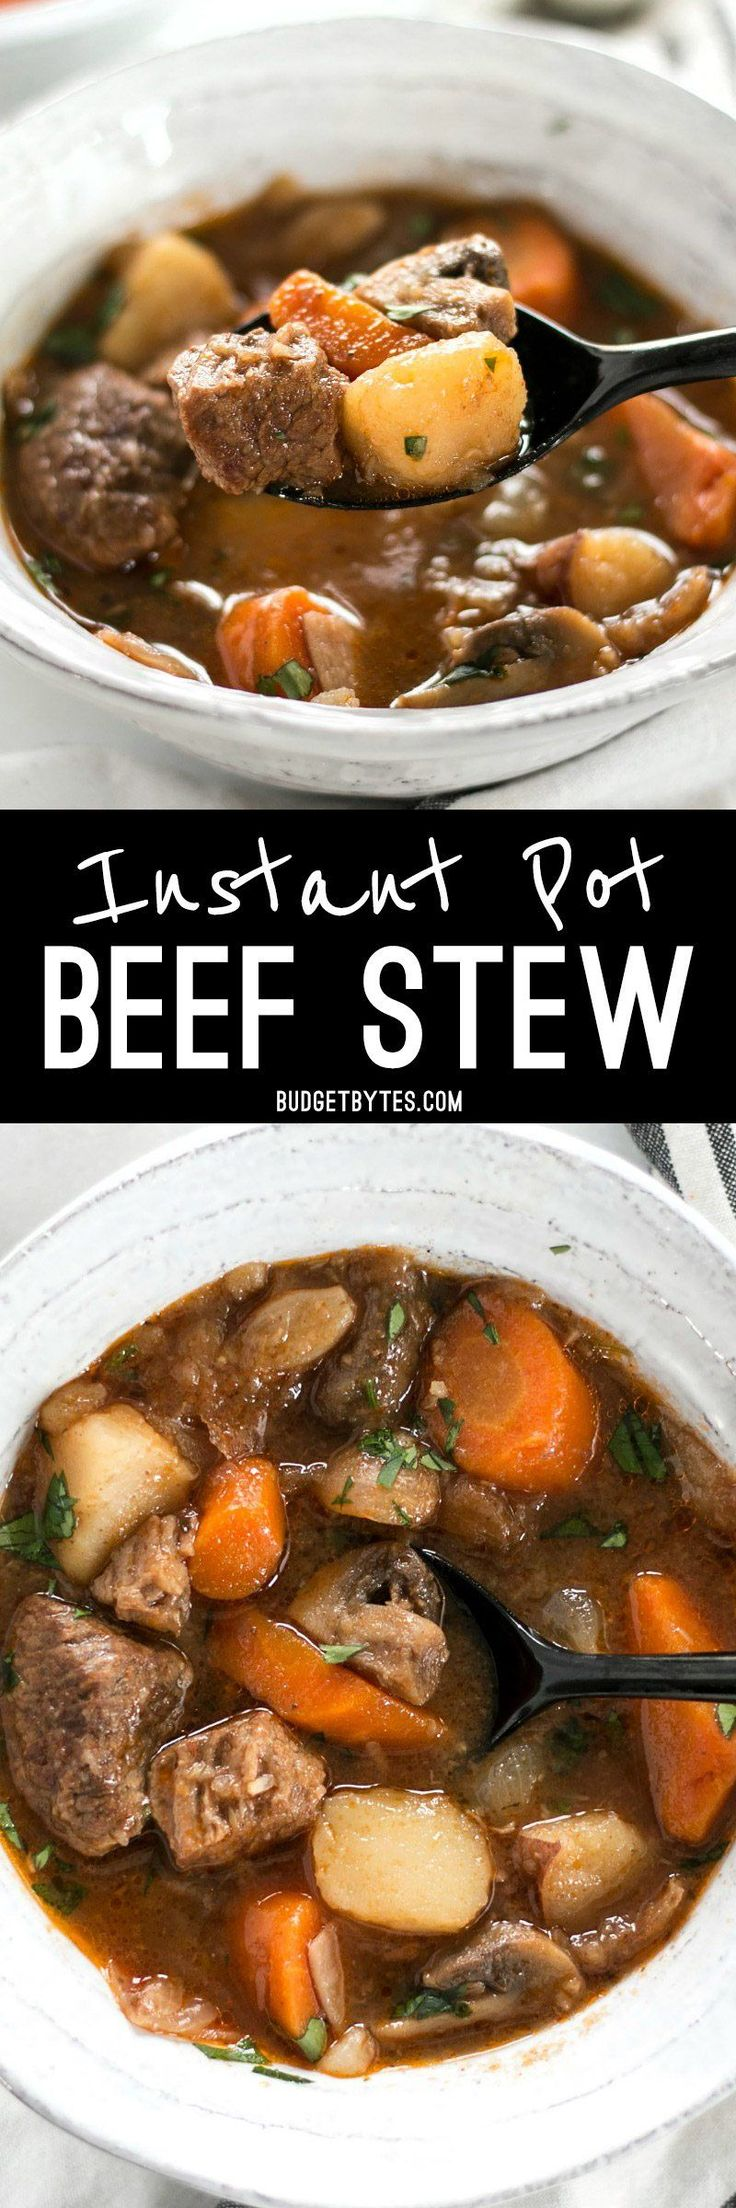 This Instant Pot Beef Stew is incredibly fast and easy, but is packed with slow-cooked flavor.